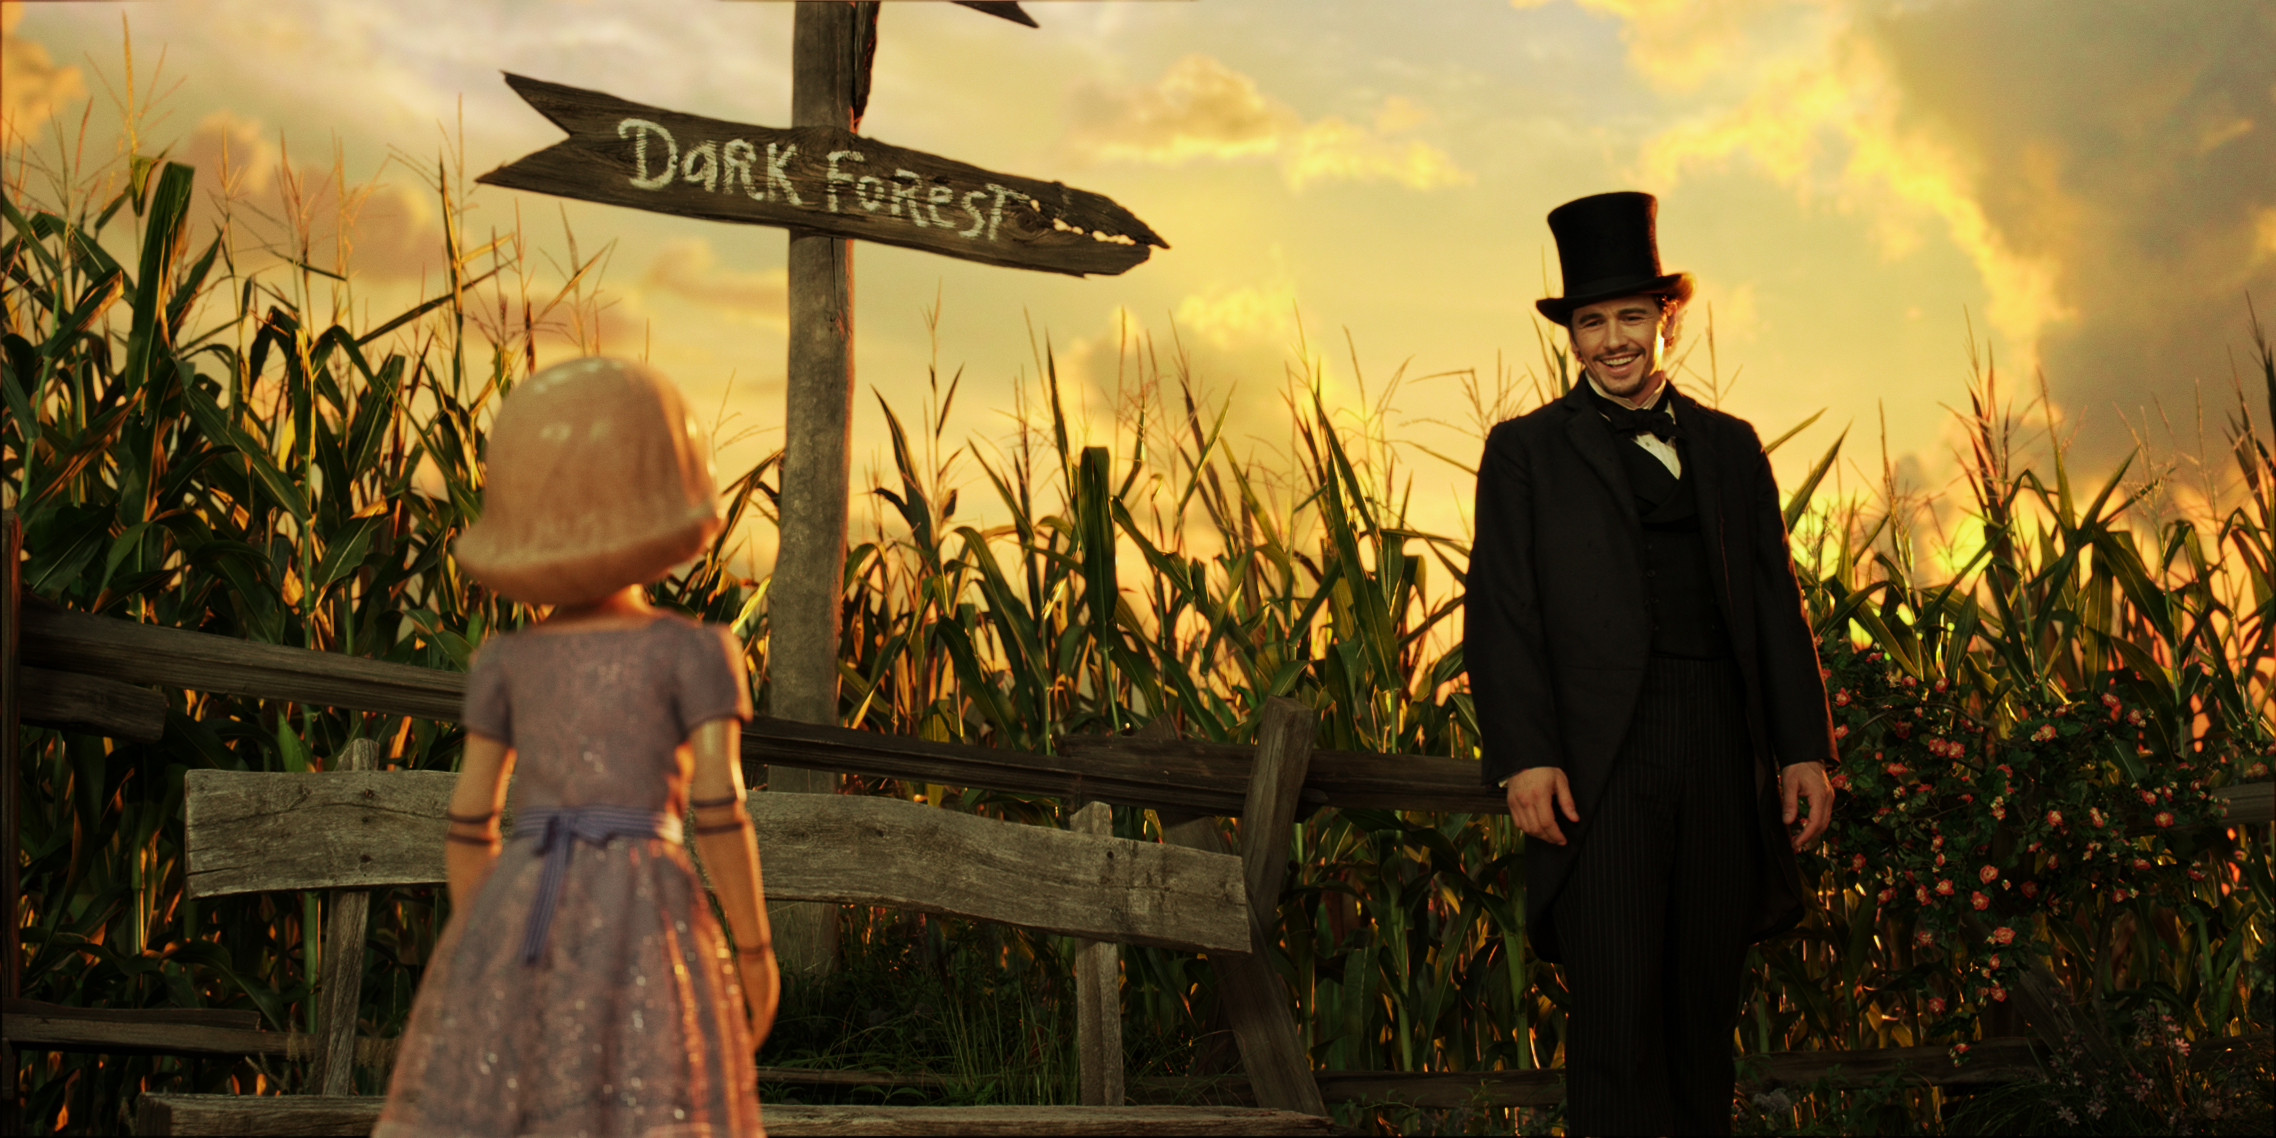 Oz the Great and Powerful (2013) | Anti-Film SchoolOz The Great And Powerful Cast